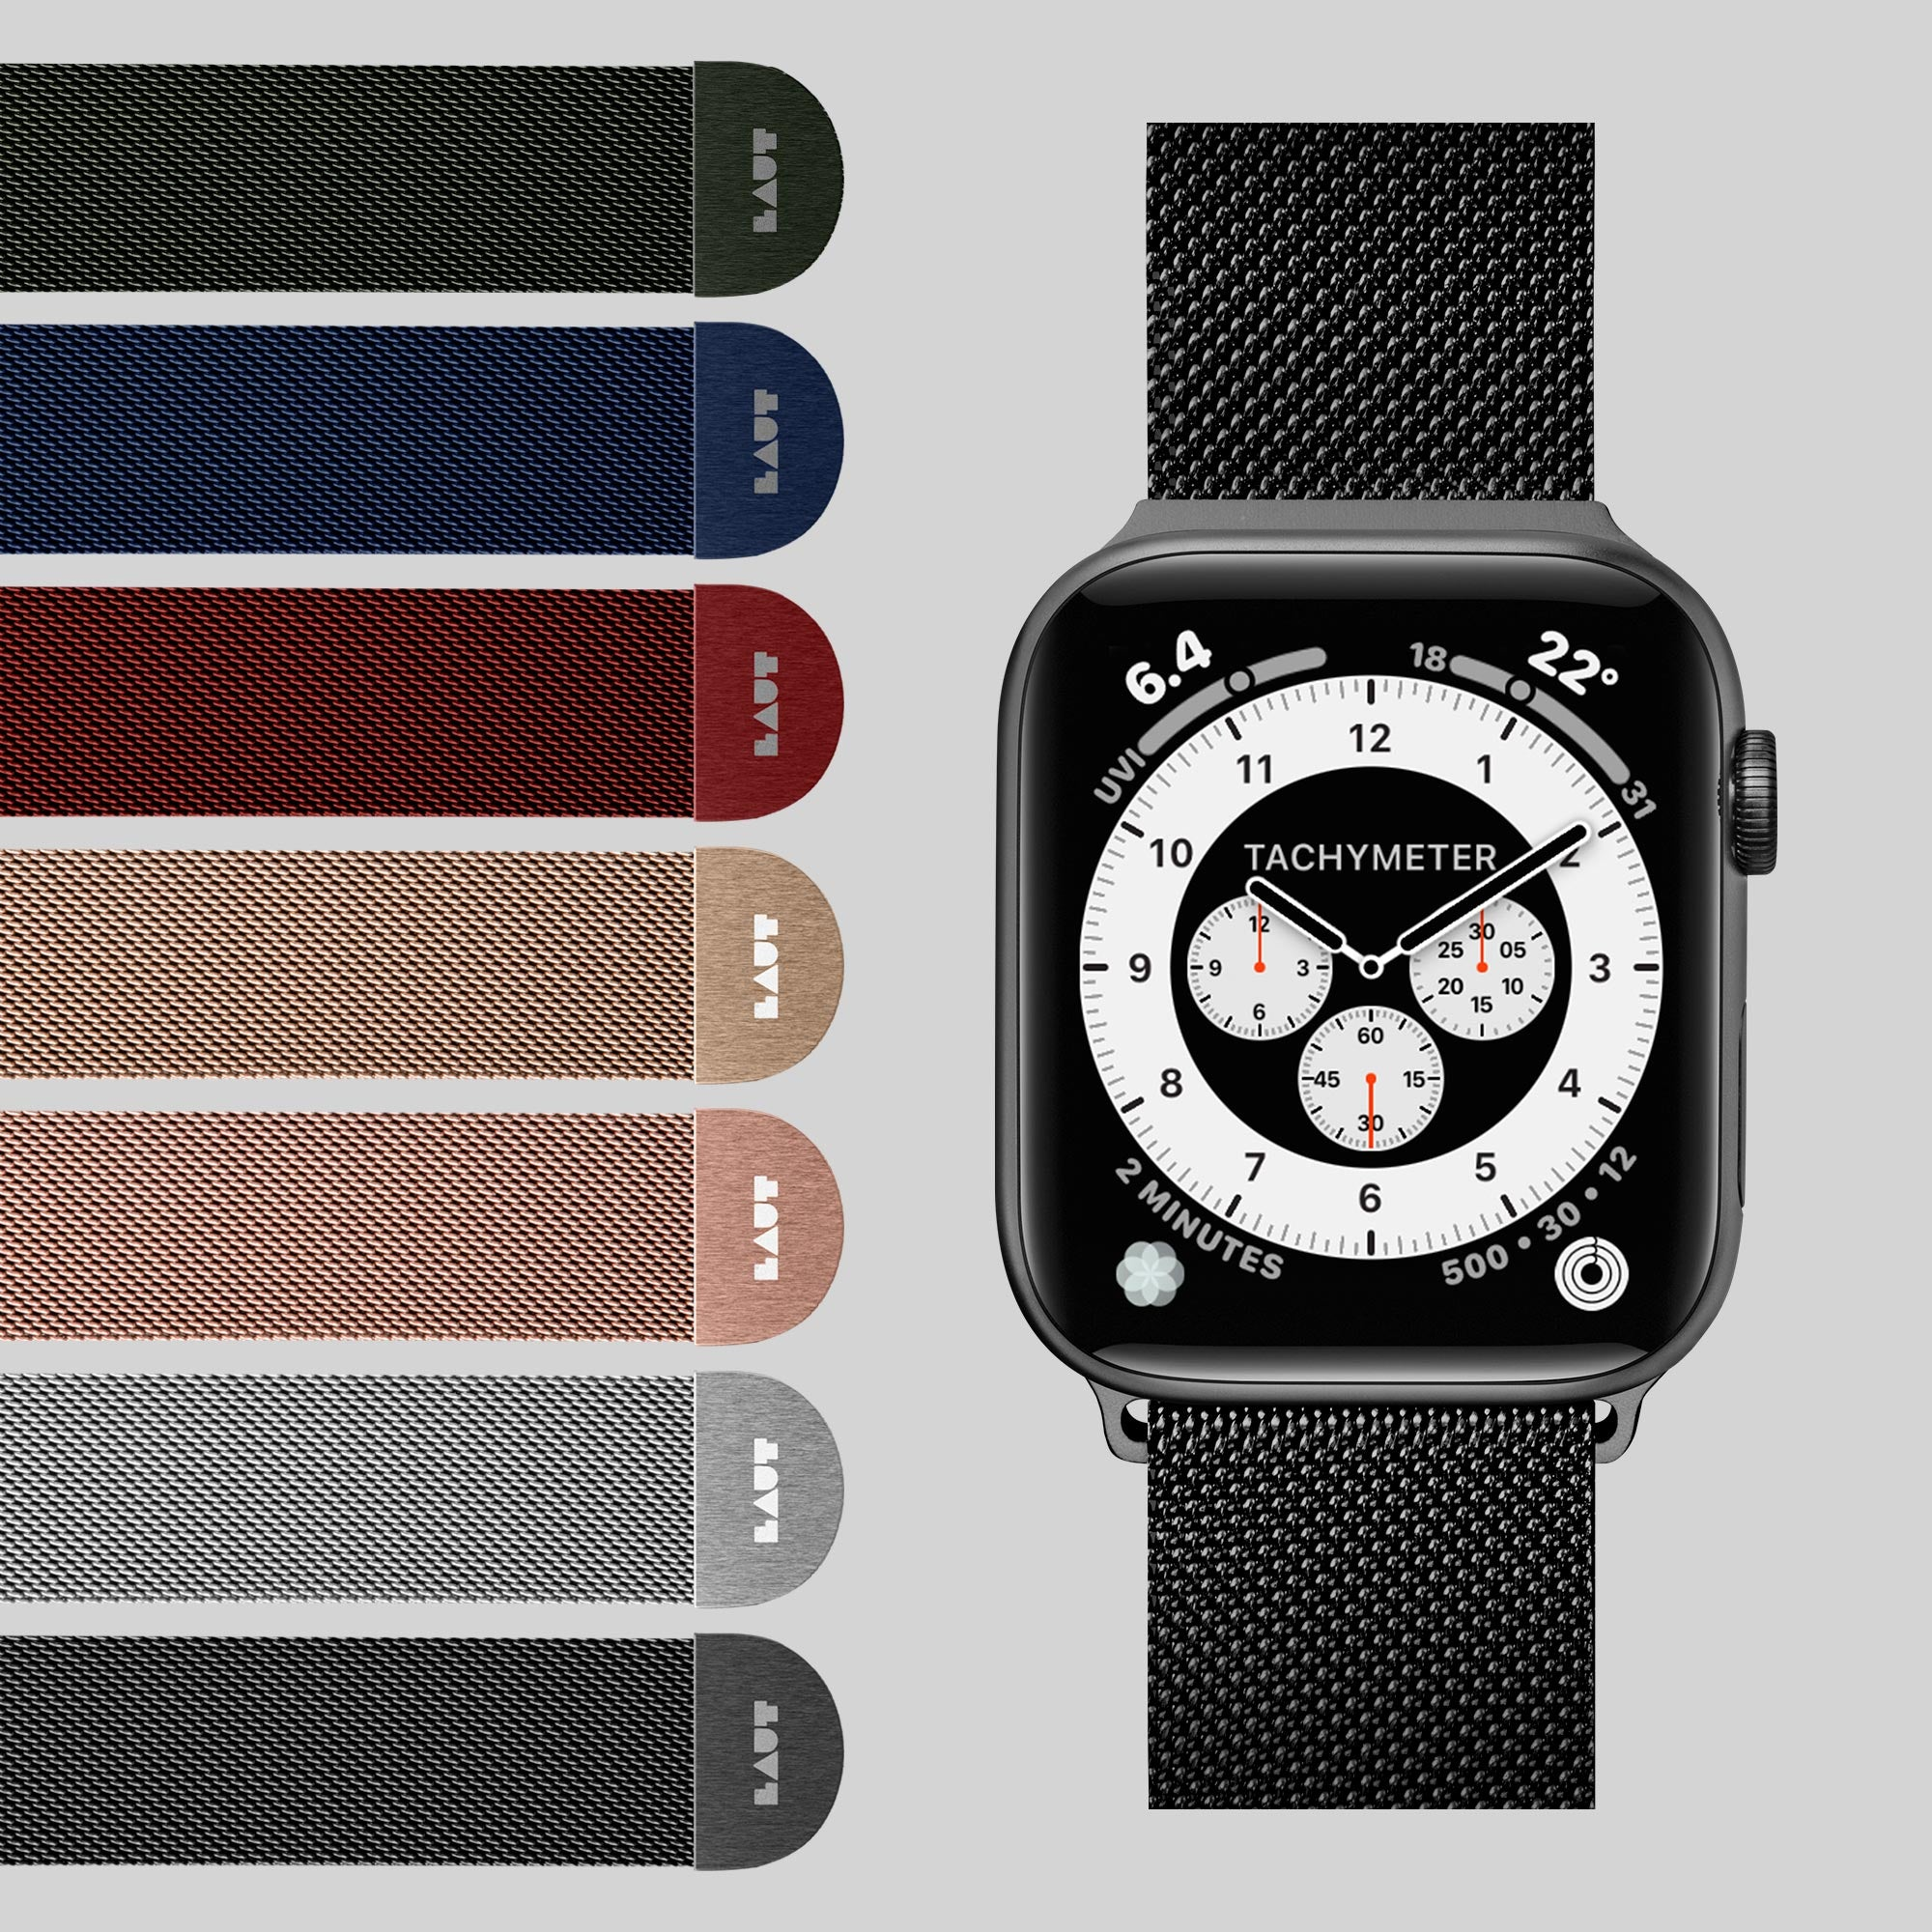 LAUT-Steel Loop Watch Strap for Apple Watch Series 1/2/3/4-Watch Strap-For Apple Watch Series 1/2/3/4